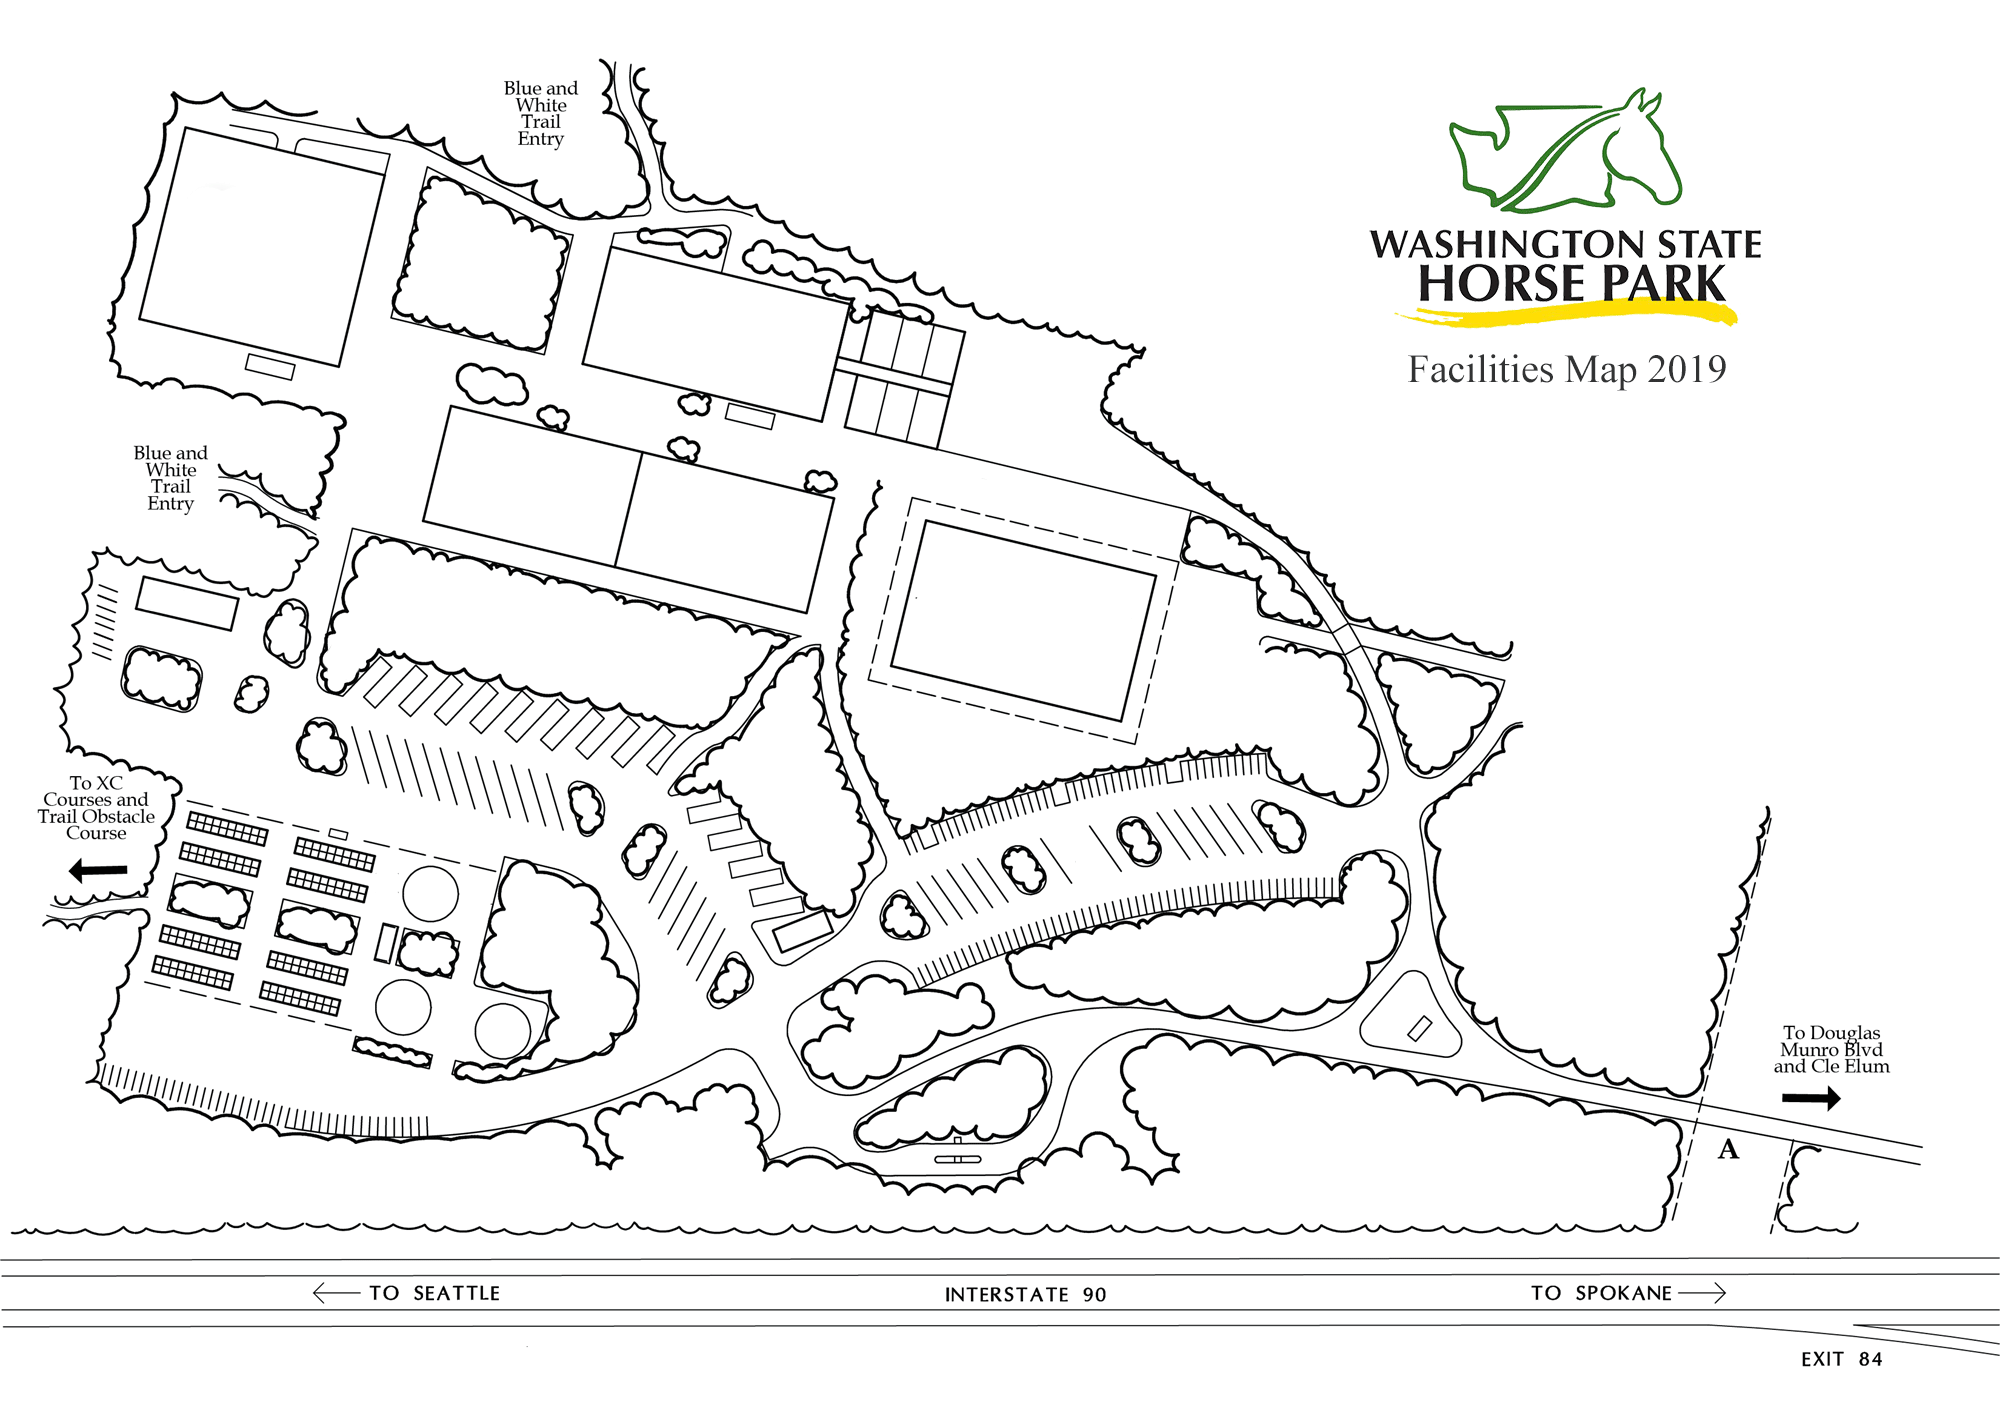 Map of Washington State Horse Park facilities for 2019